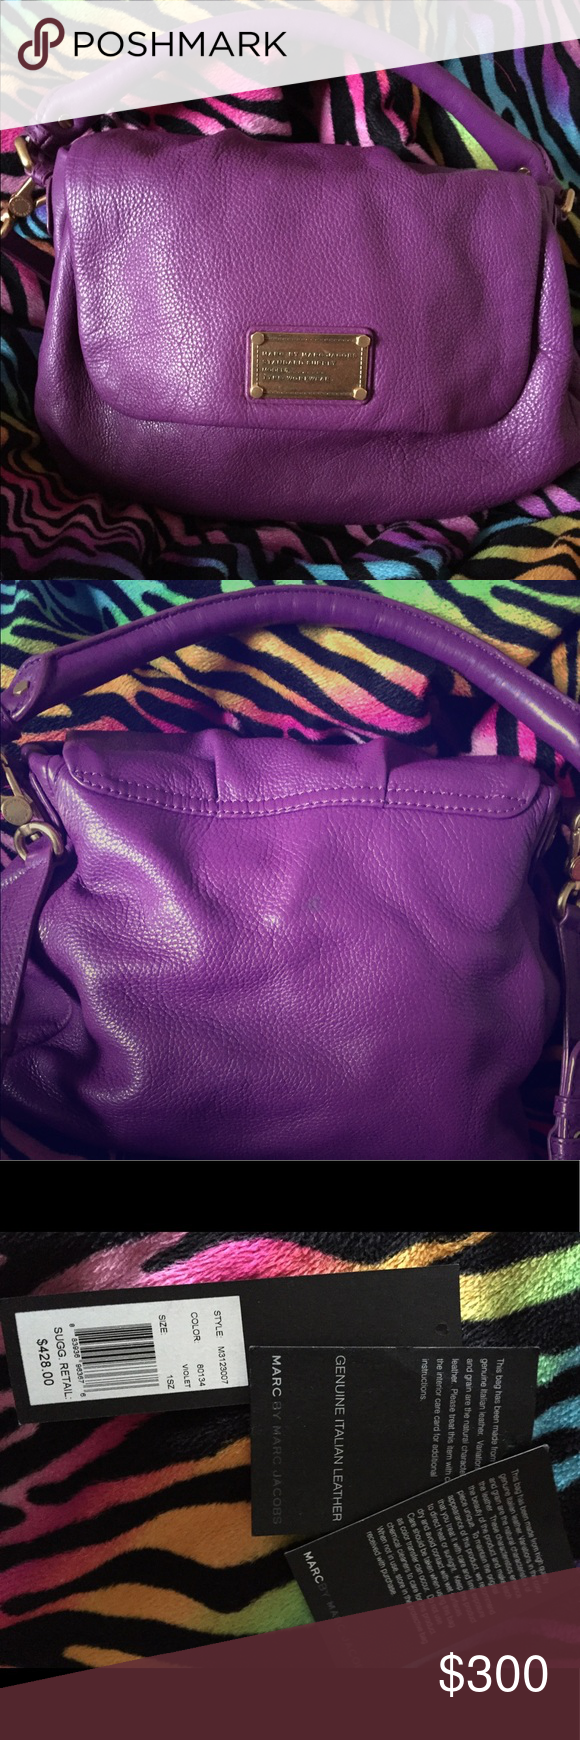 Marc By Marc Jacobs Classic Q This bag is a pretty purple (violet) color. It has a lot of room and I only used it about 4 times. It has no stains or damage. This bag is in very good condition. Marc by Marc Jacobs Bags Shoulder Bags